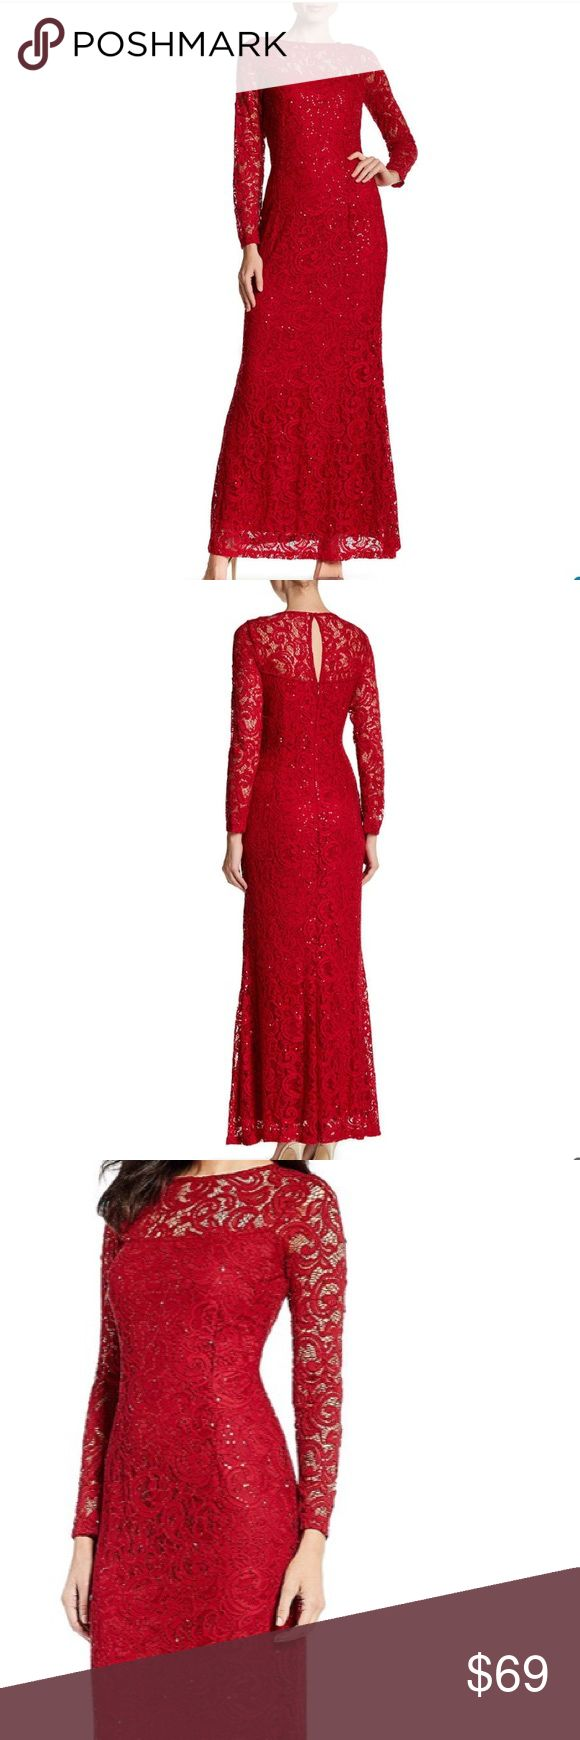 New Arrival ✨Red Marina floor length formal🌹 $100 off retail 👠💋💄This dress has ⭐️⭐️⭐️⭐️⭐️ reviews. Selling at a major department store this week for $149. I have several Marina lace dresses and they fit well and are very complimentary to your curves. Also comfortable. No trades. MARINA Dresses